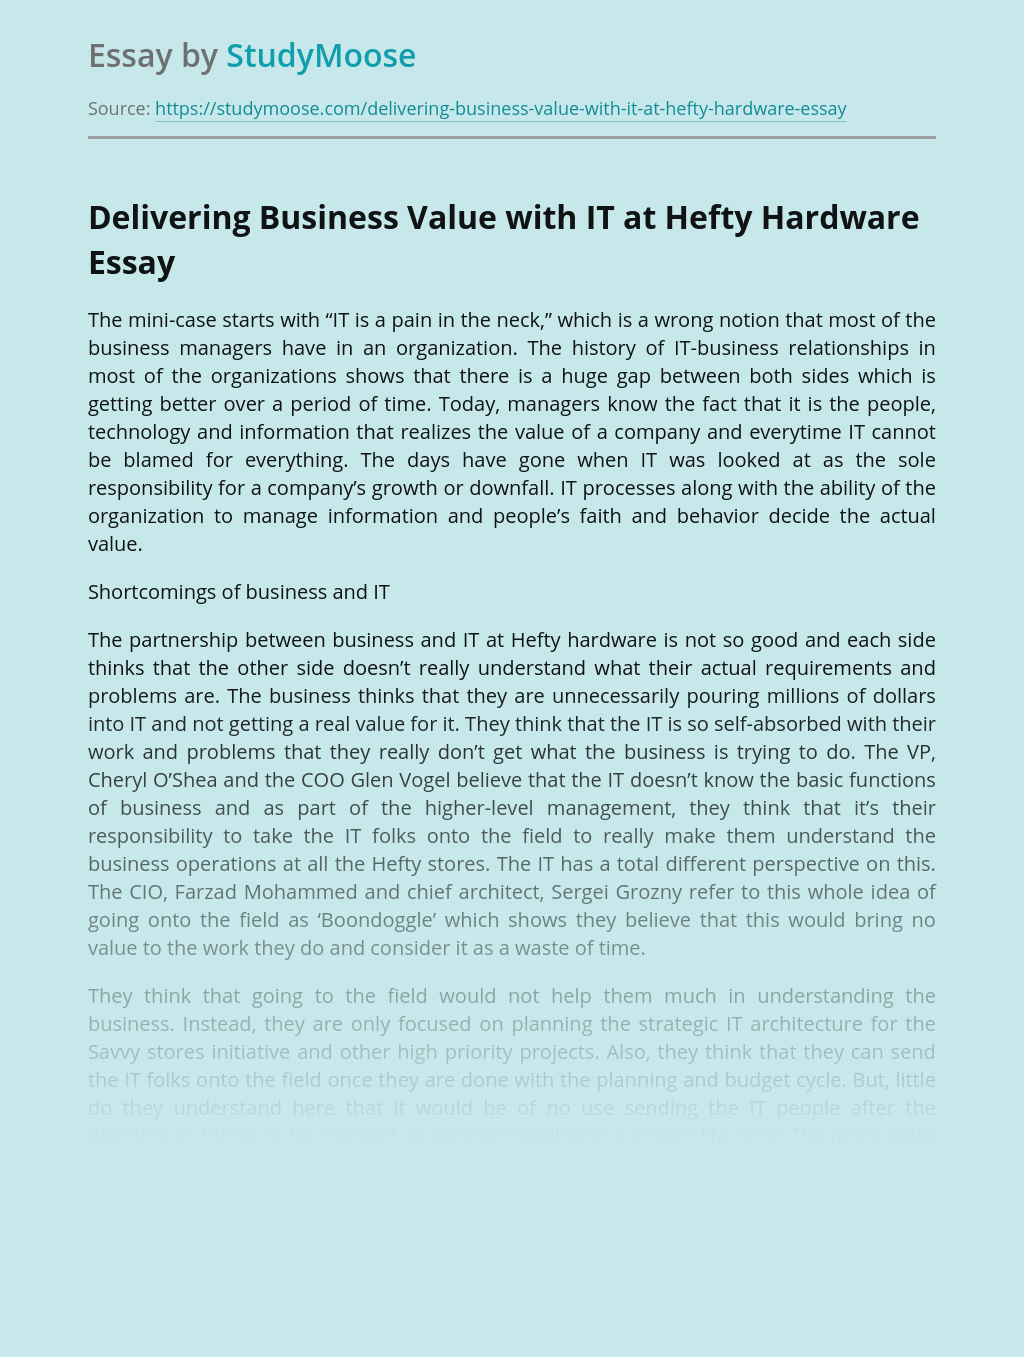 Delivering Business Value with IT at Hefty Hardware